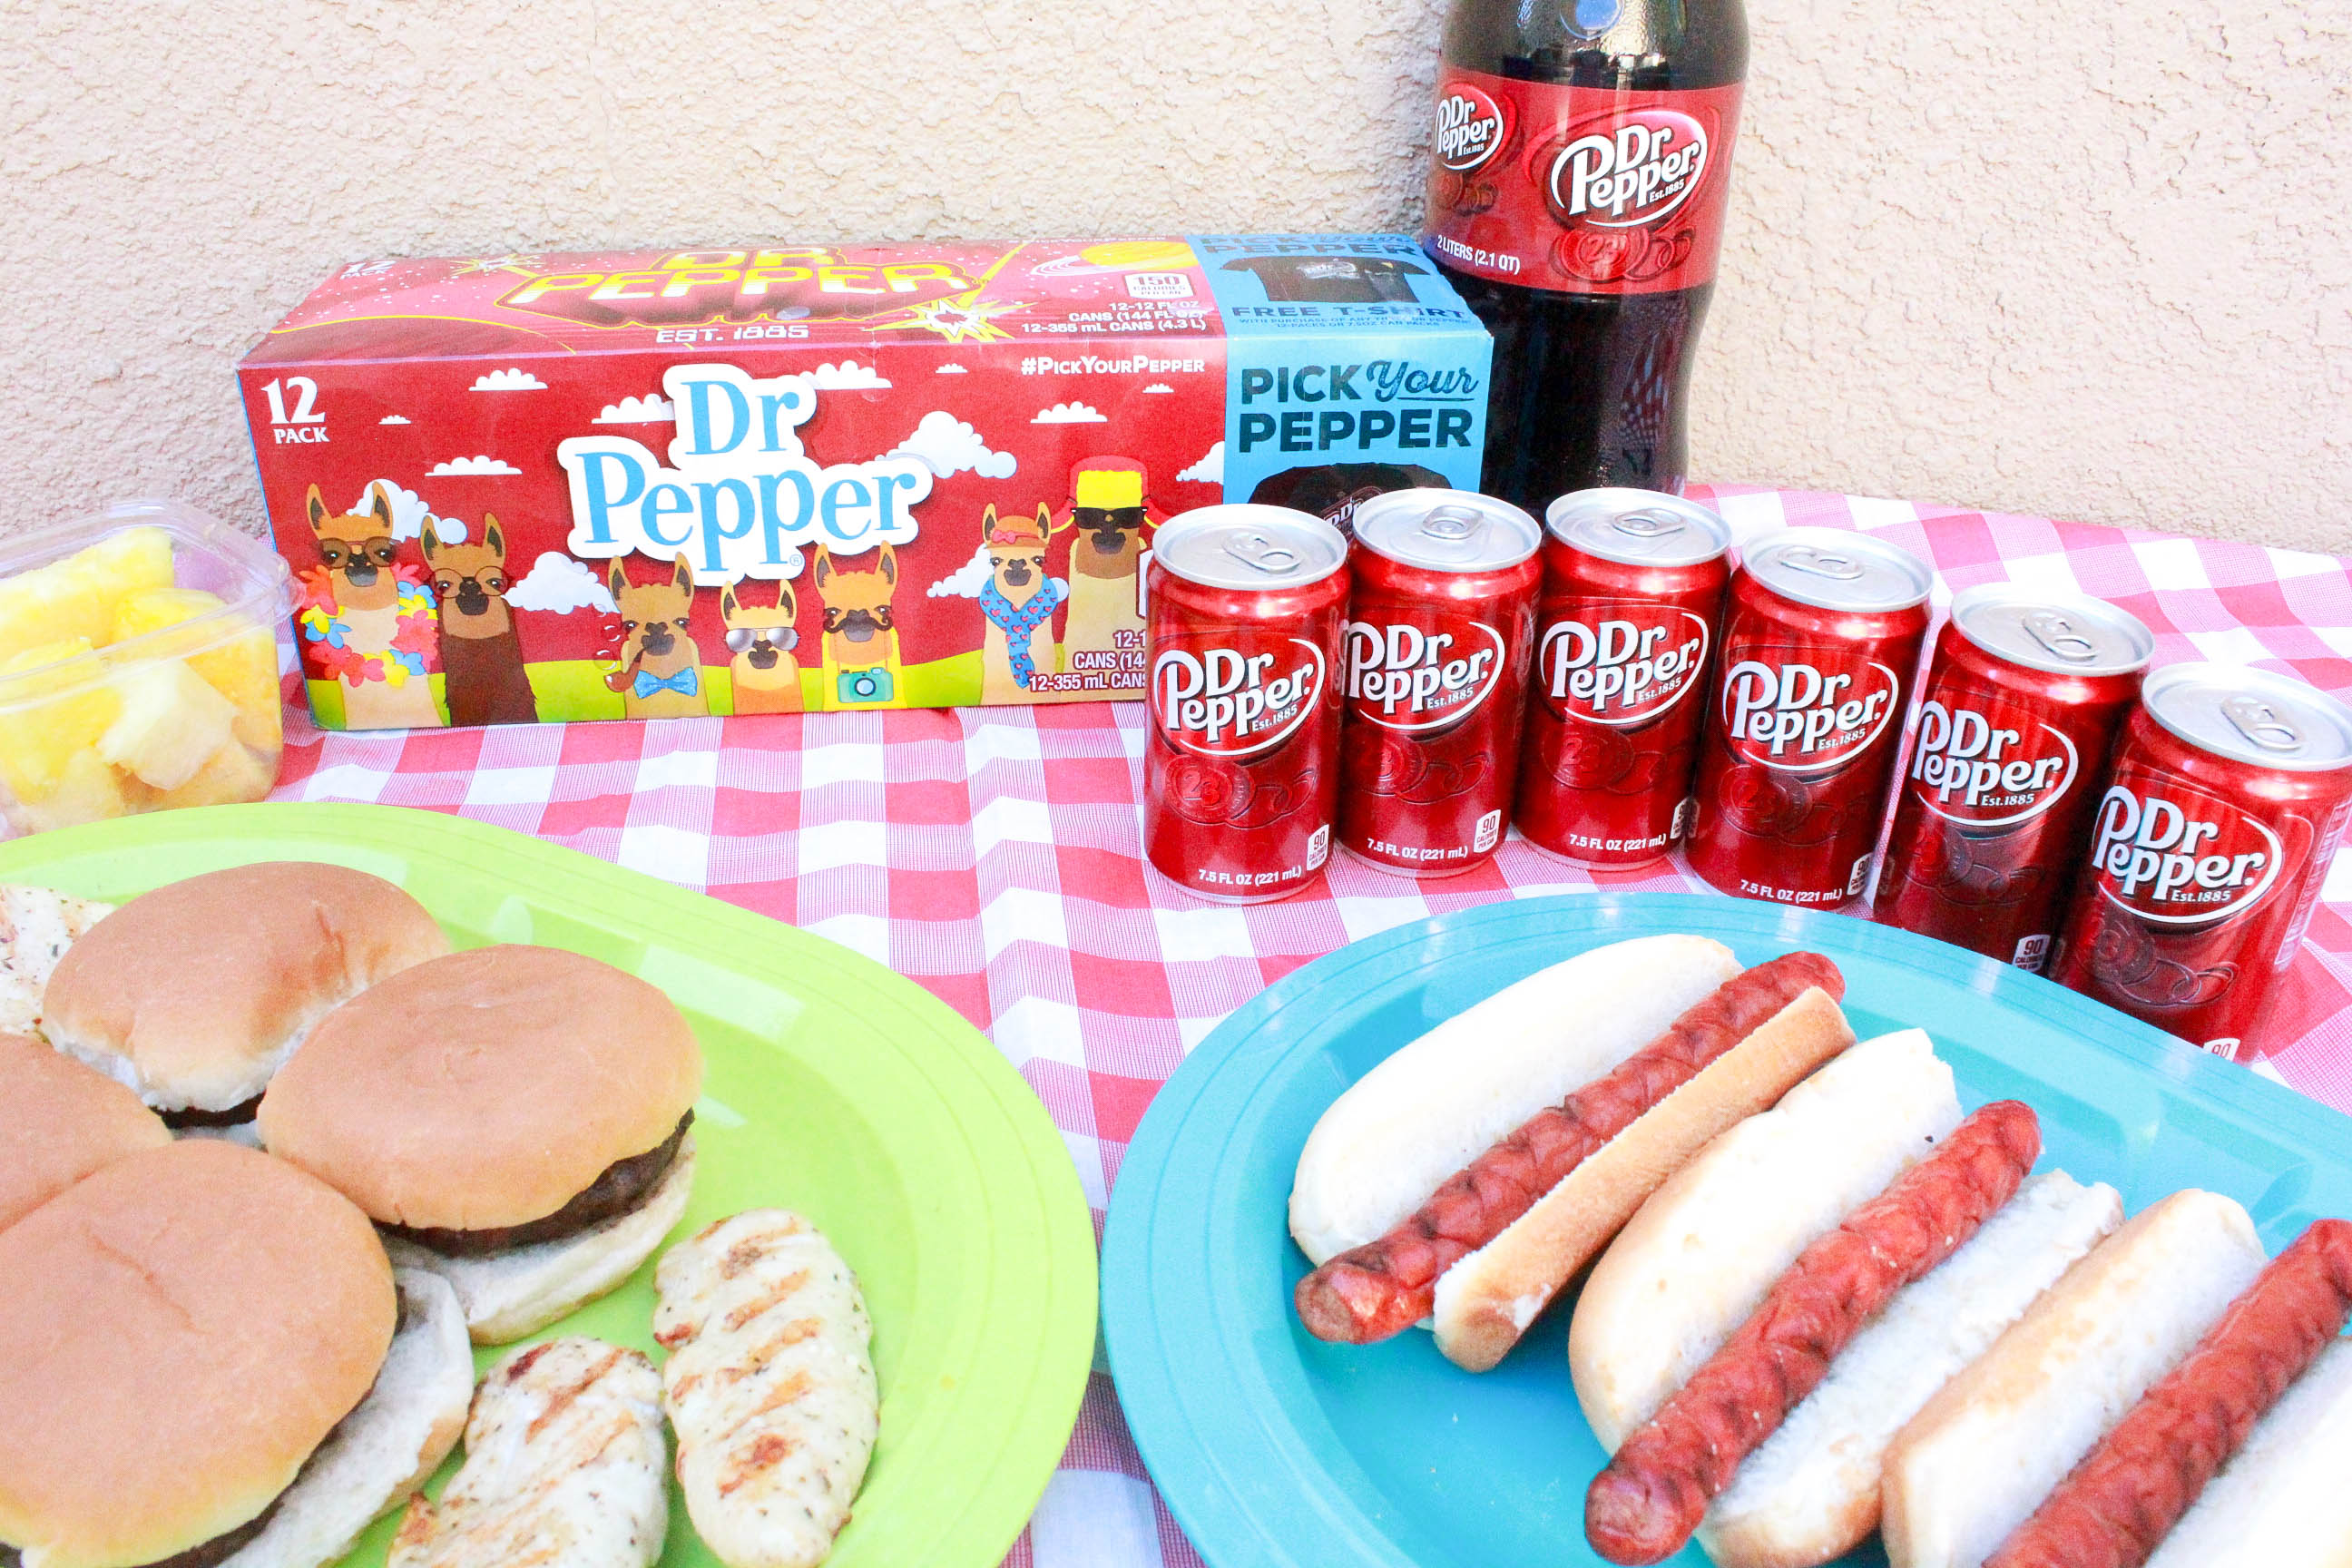 missyonmadison, missyonmadison instagram, missyonmadison blogger, la blogger, style blog, style blogger, dr pepper, dr pepper cans, pick your pepper, dr pepper giveaway, dr pepper pick your pepper giveaway, dr pepper sweepstakes, enter to win, giveaway, contest, summertime bbq, how to bbq, bbq tips, summer party, pool party,